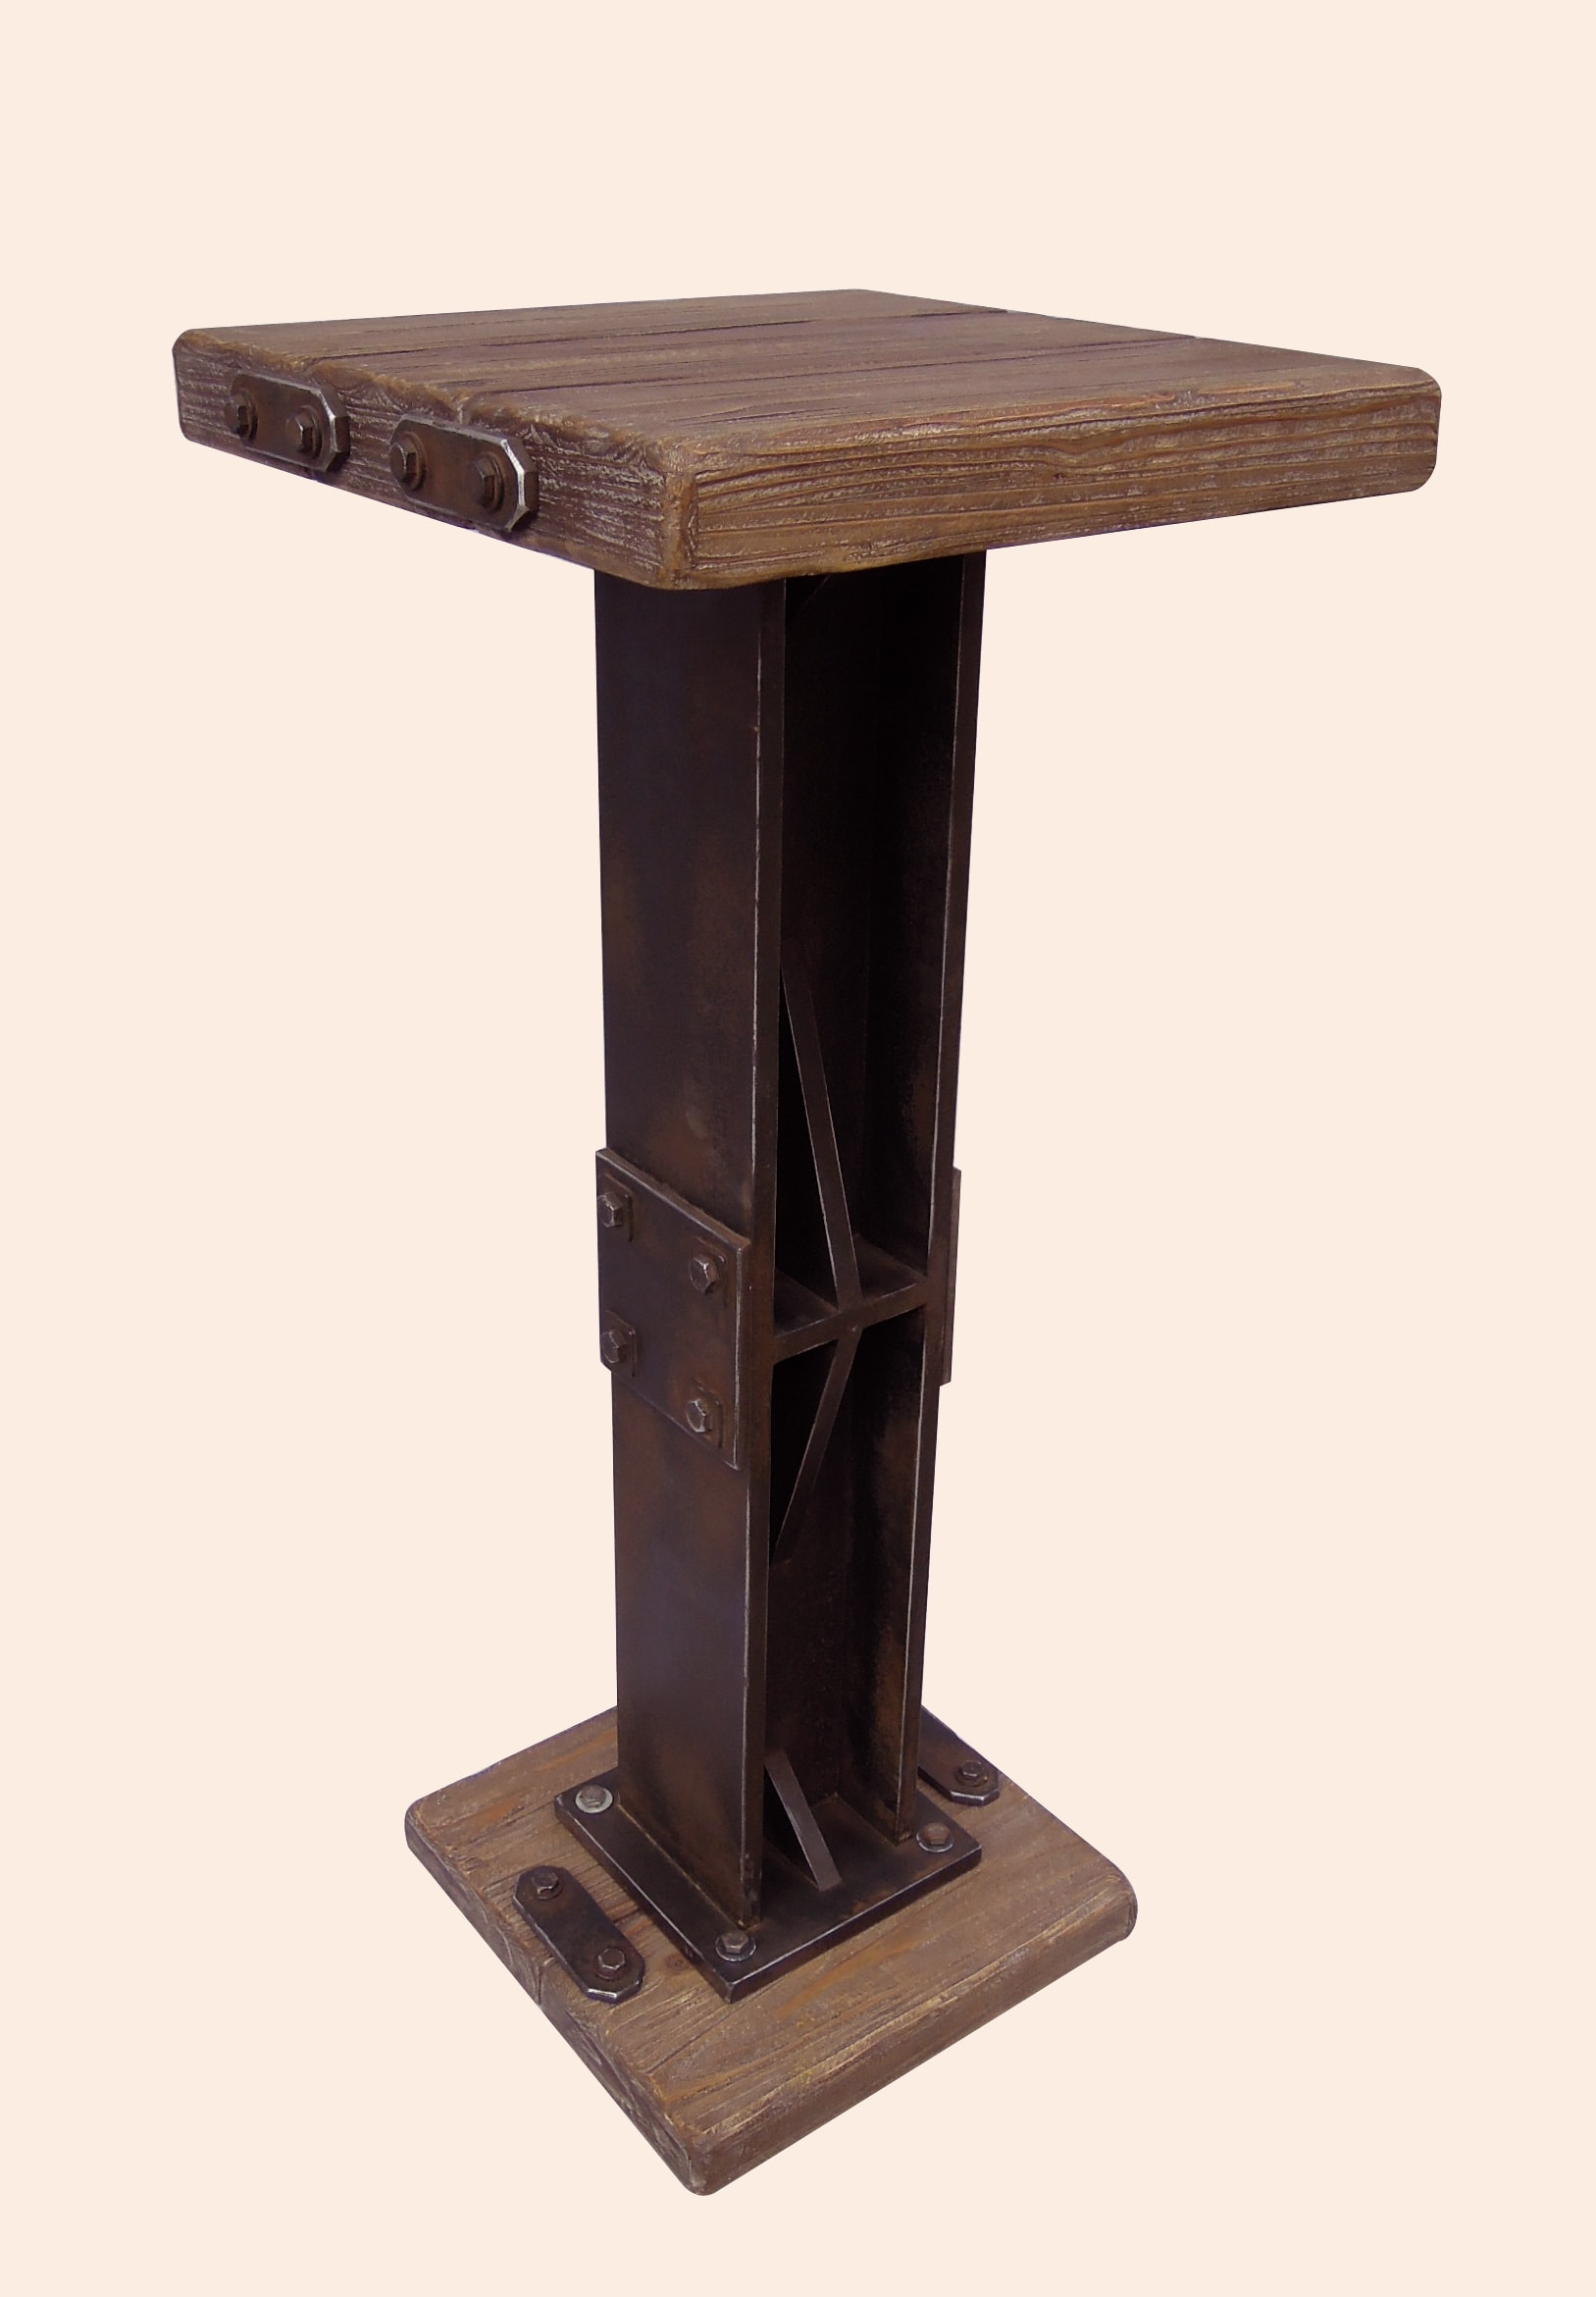 Rustic Forge Bar height Square Bistro Table : Rustic Forge Bar height Square Bistro Table P14680747 from www.overstock.com size 1627 x 2341 jpeg 176kB